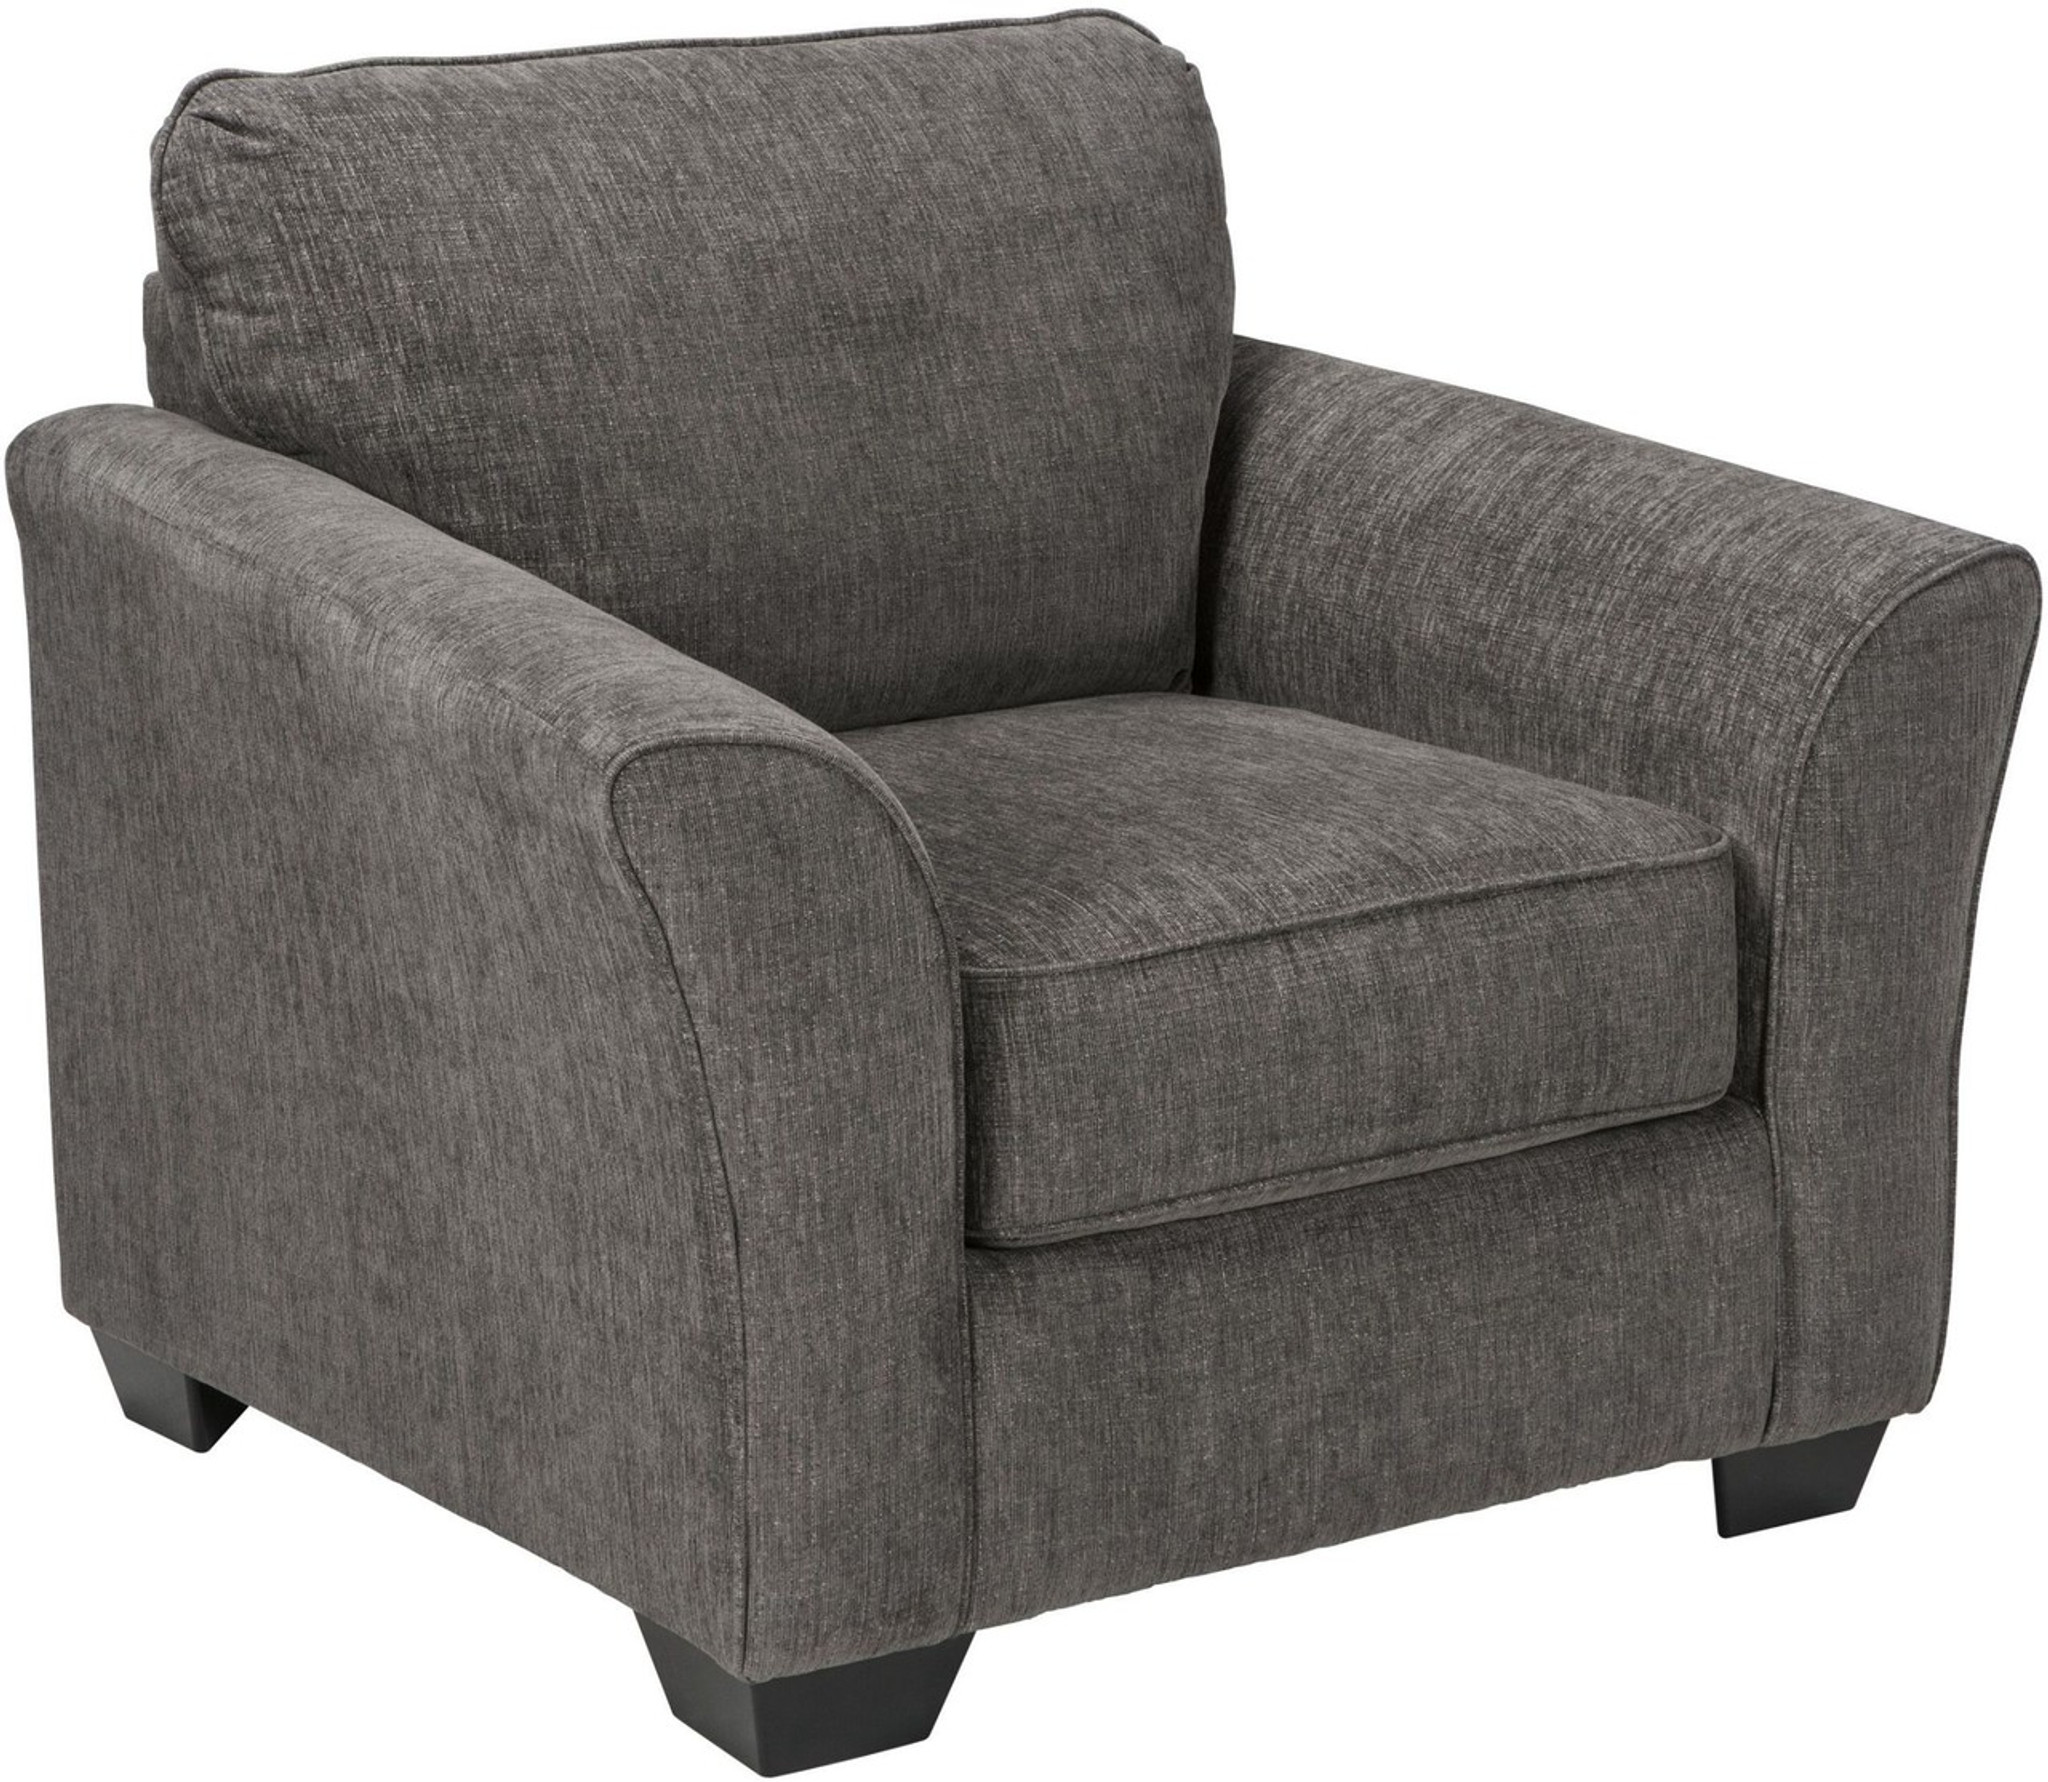 Terrific Brise Slate Collection Queen Sofa Chaise Sleeper Dailytribune Chair Design For Home Dailytribuneorg